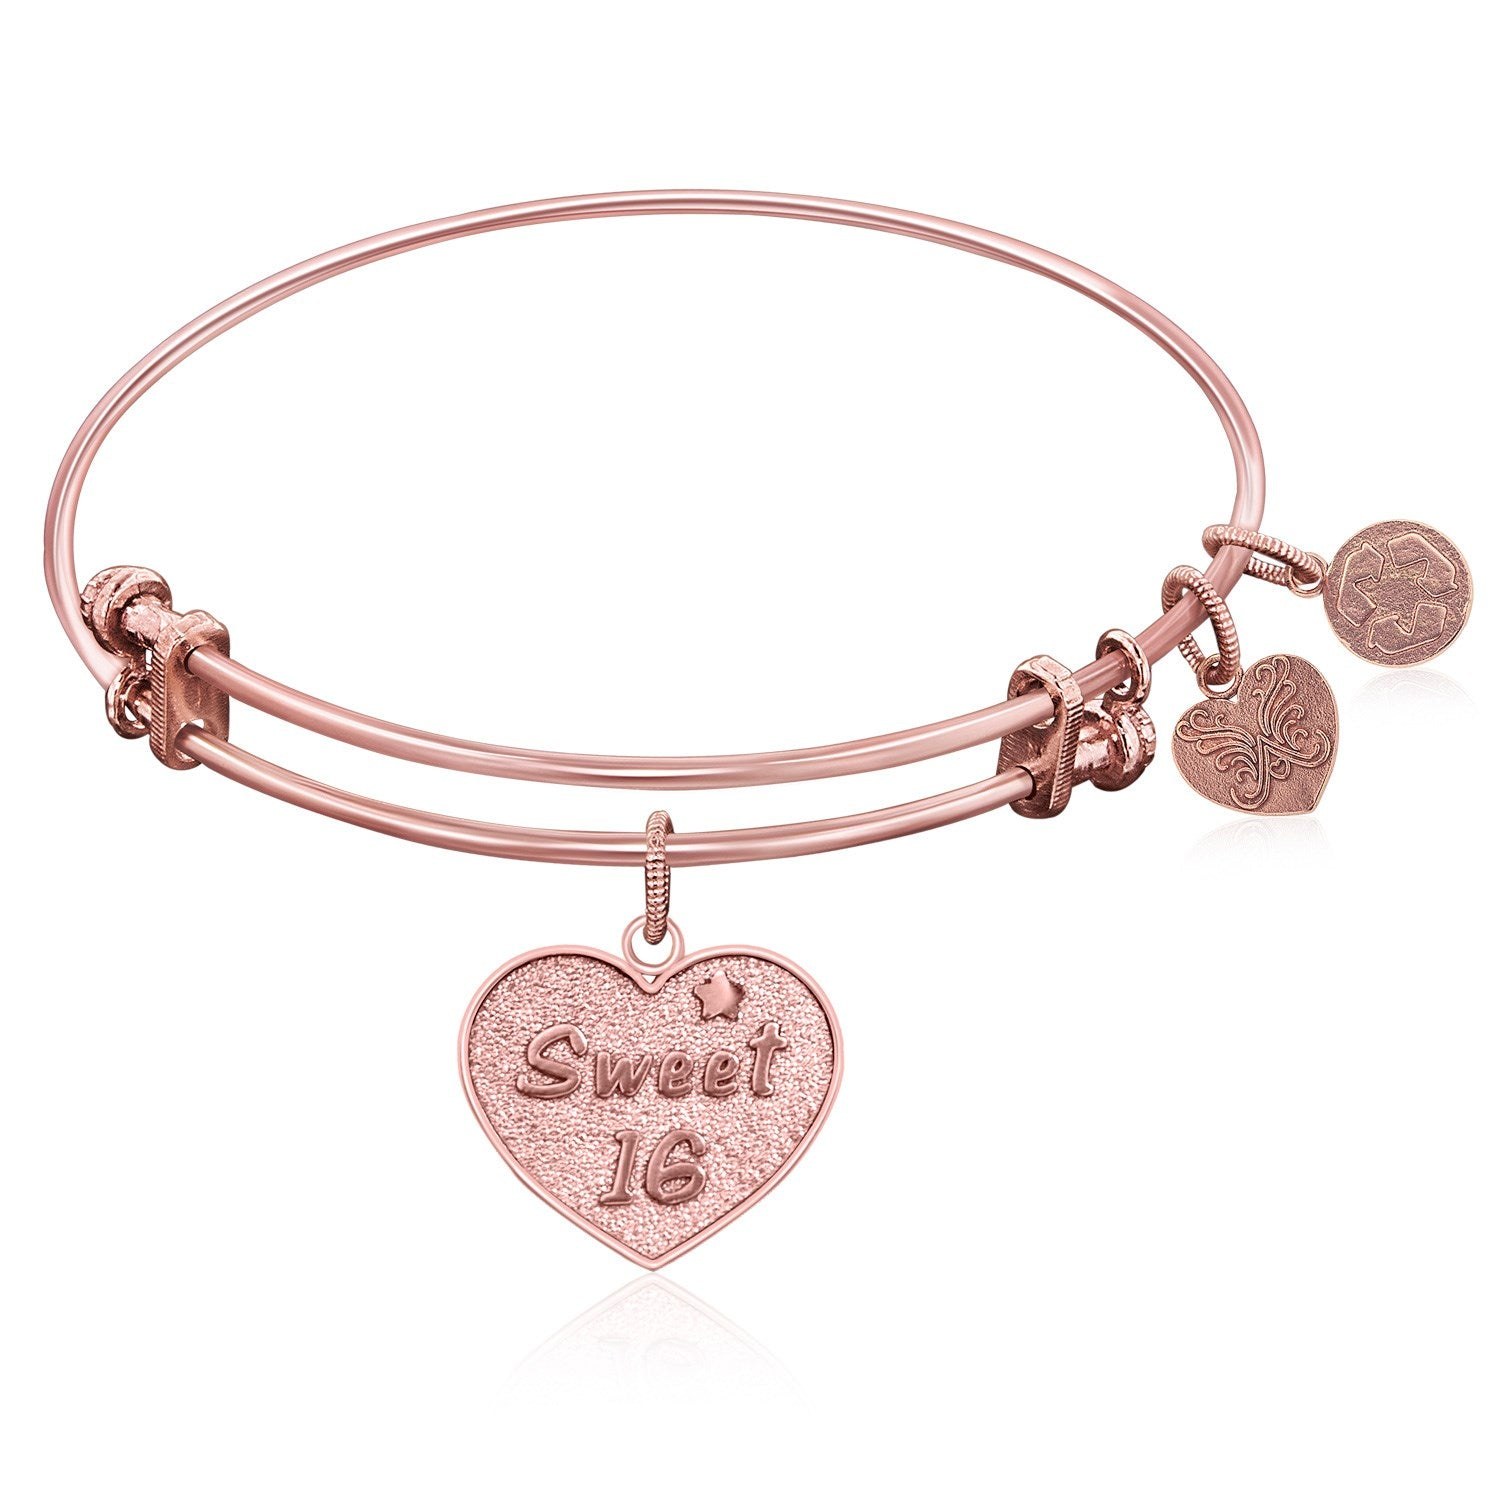 Expandable Bangle in Pink Tone Brass with Sweet 16 Symbol